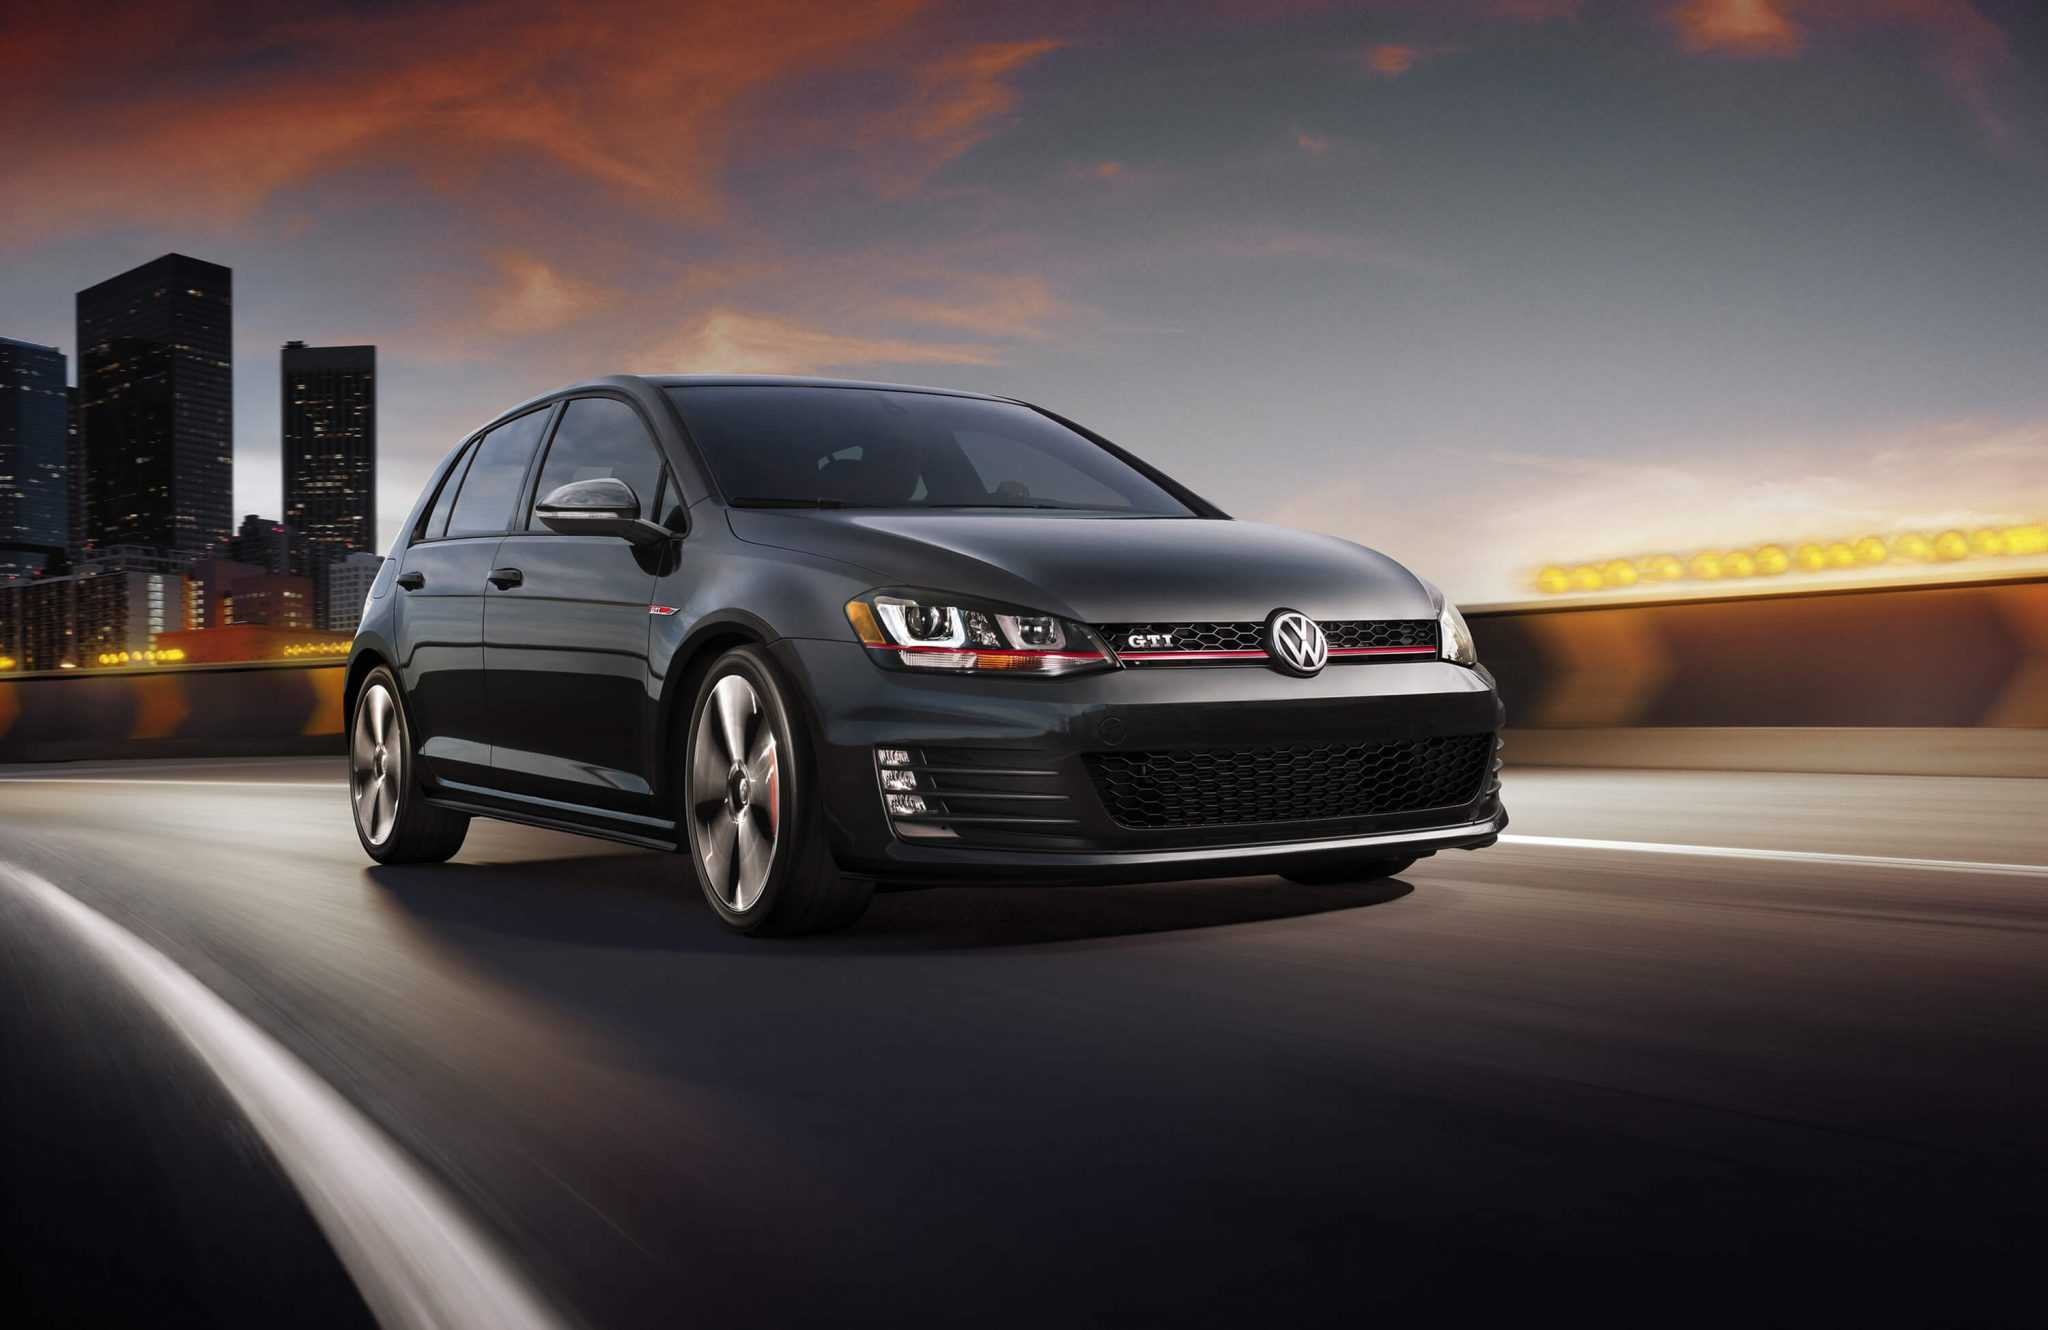 2015 Volkswagen Golf GTI Delivers Higher Performance and Increased Space at the Same Cost